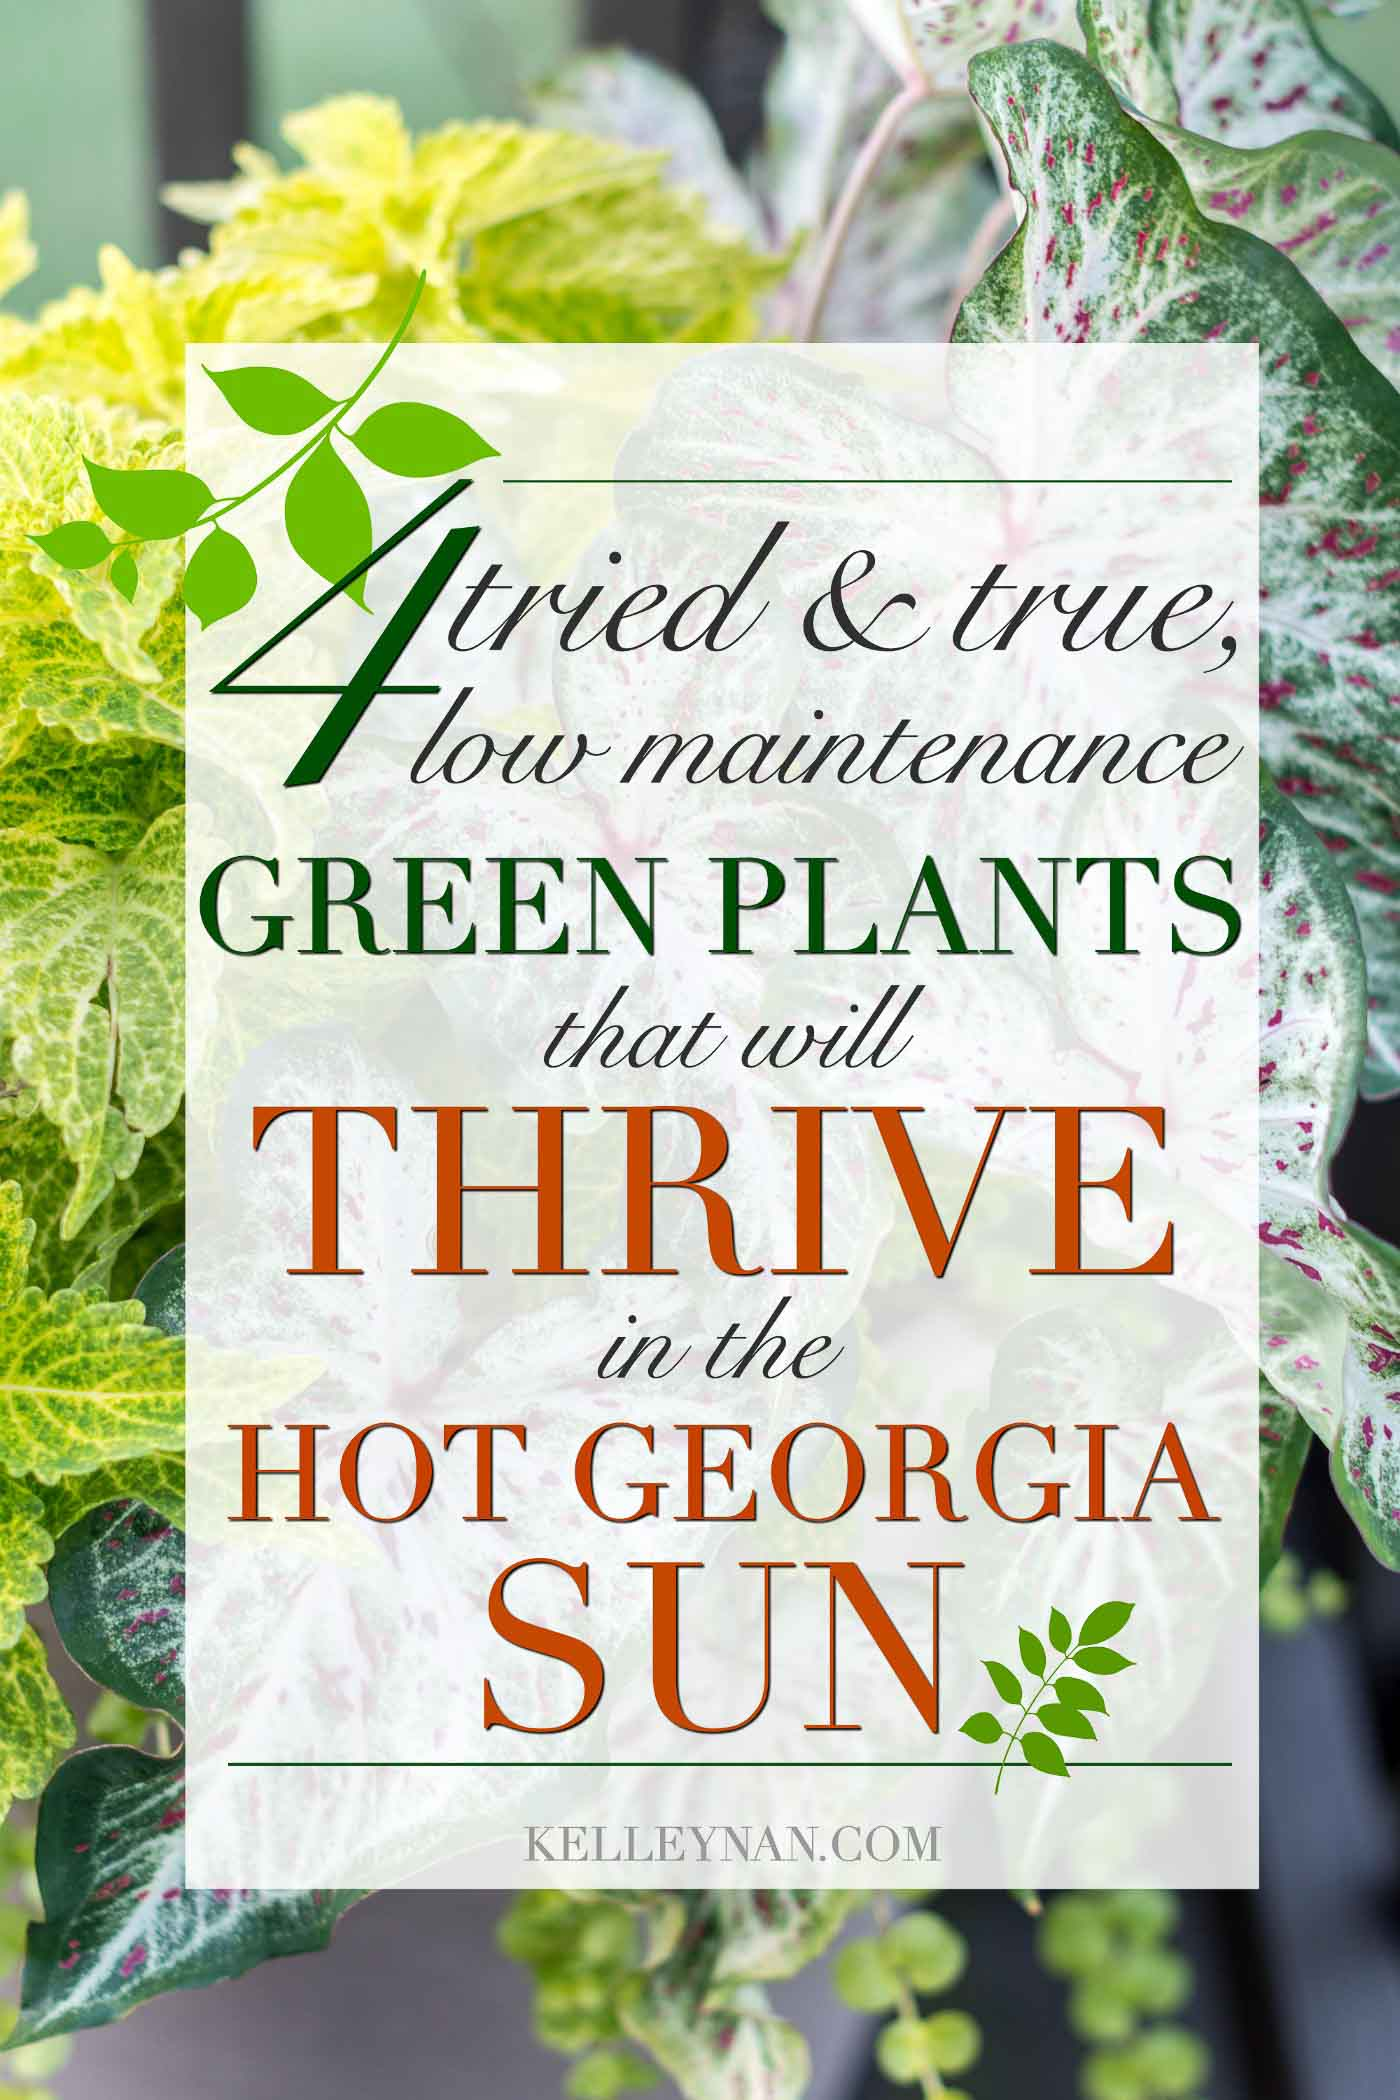 Four proven low maintenance green plants that will thrive in the hot Georgia sun (or anywhere in the south!)